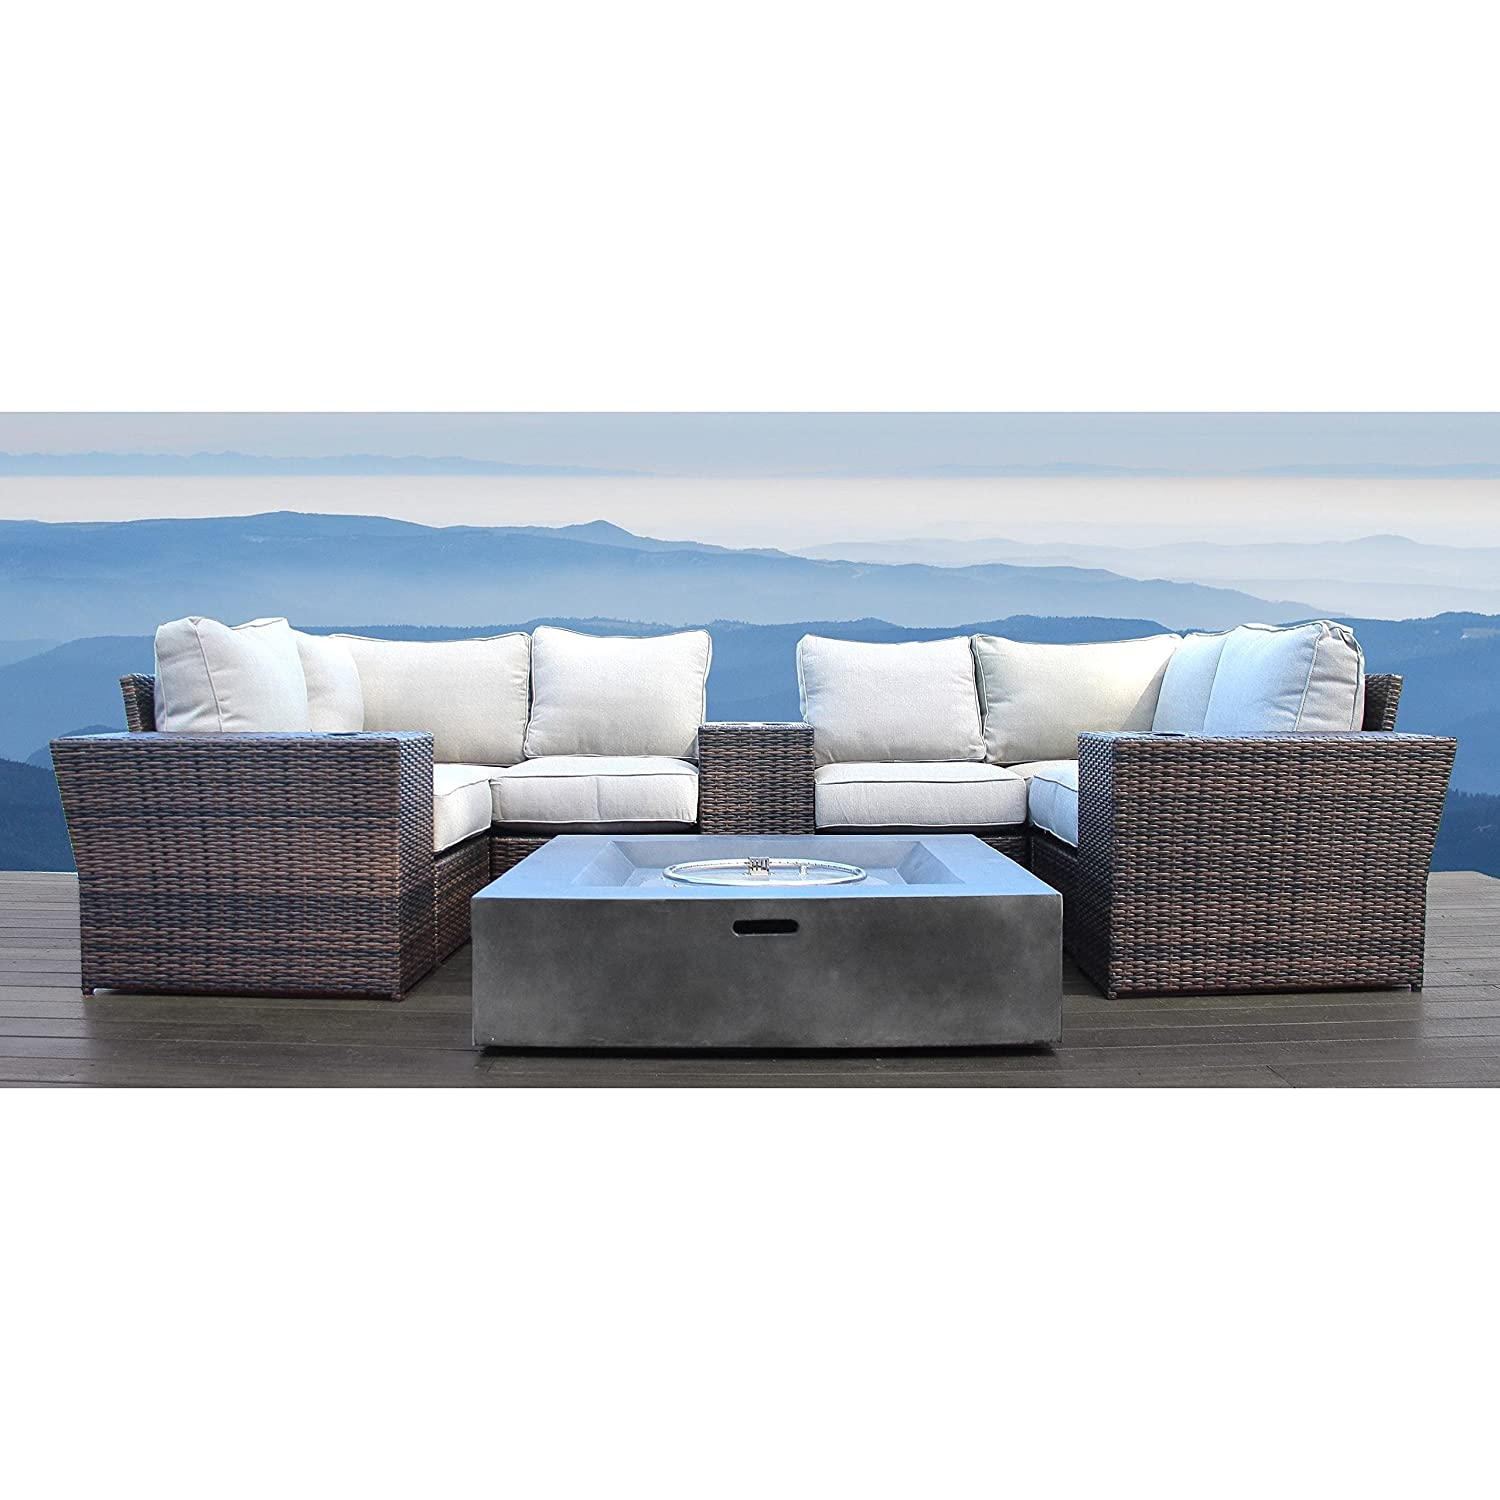 amazon com patio sofa with fire pit table no assembly required rh amazon com  patio furniture sets with propane fire pit